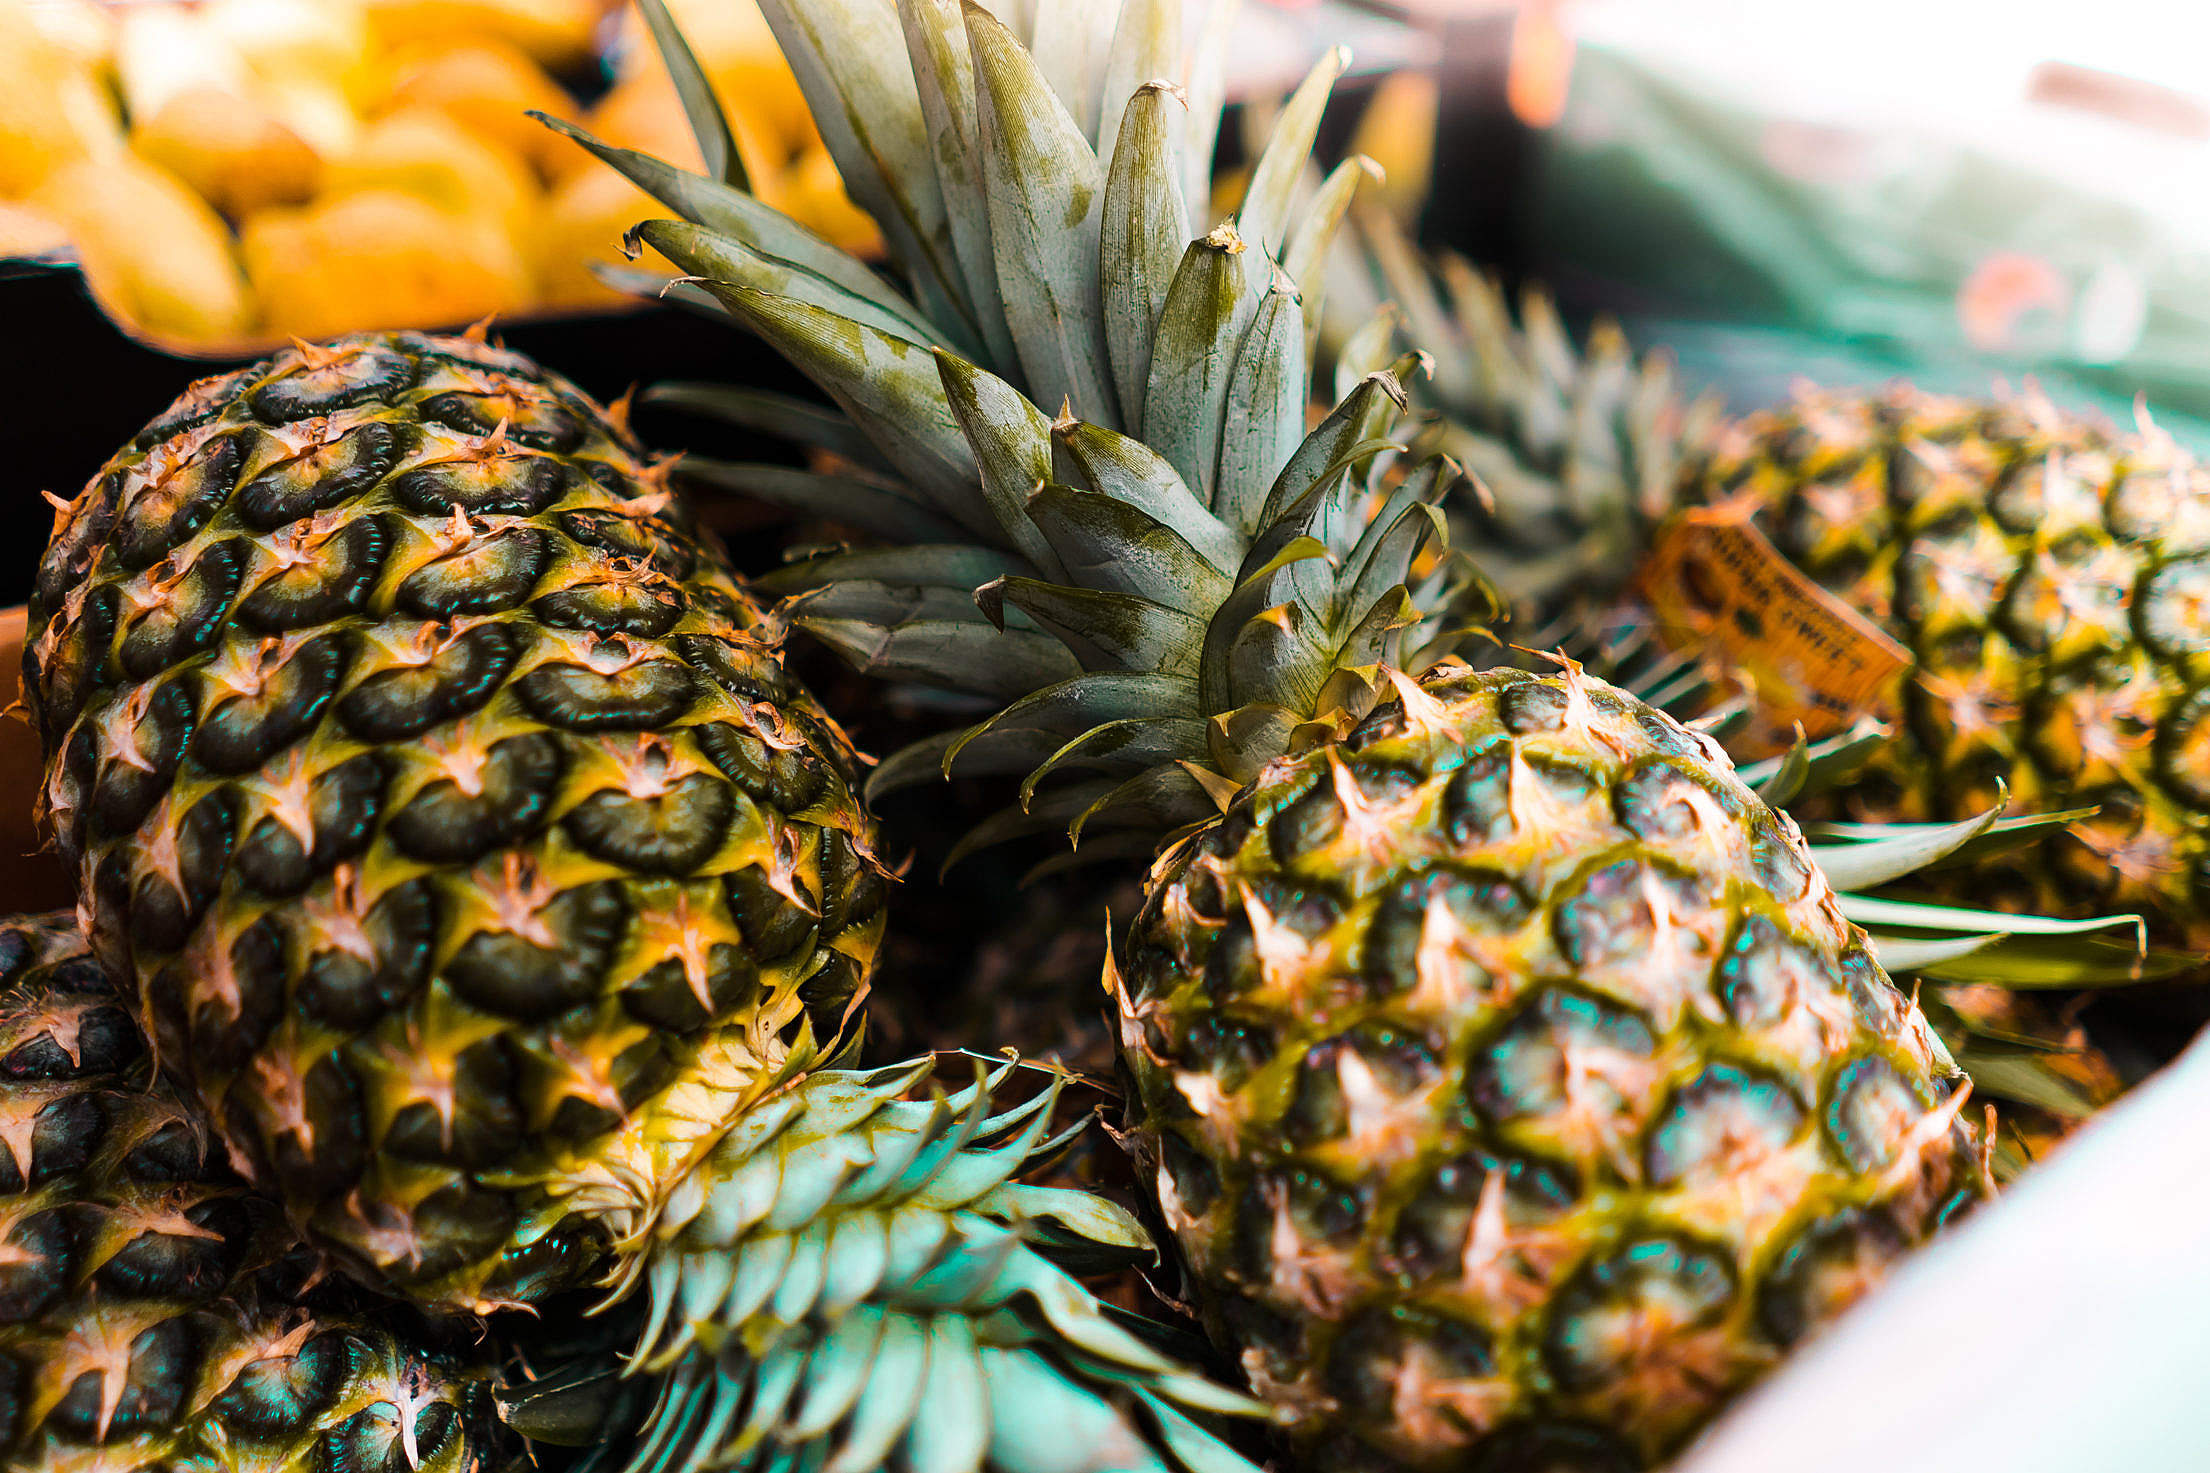 Pineapples Free Stock Photo